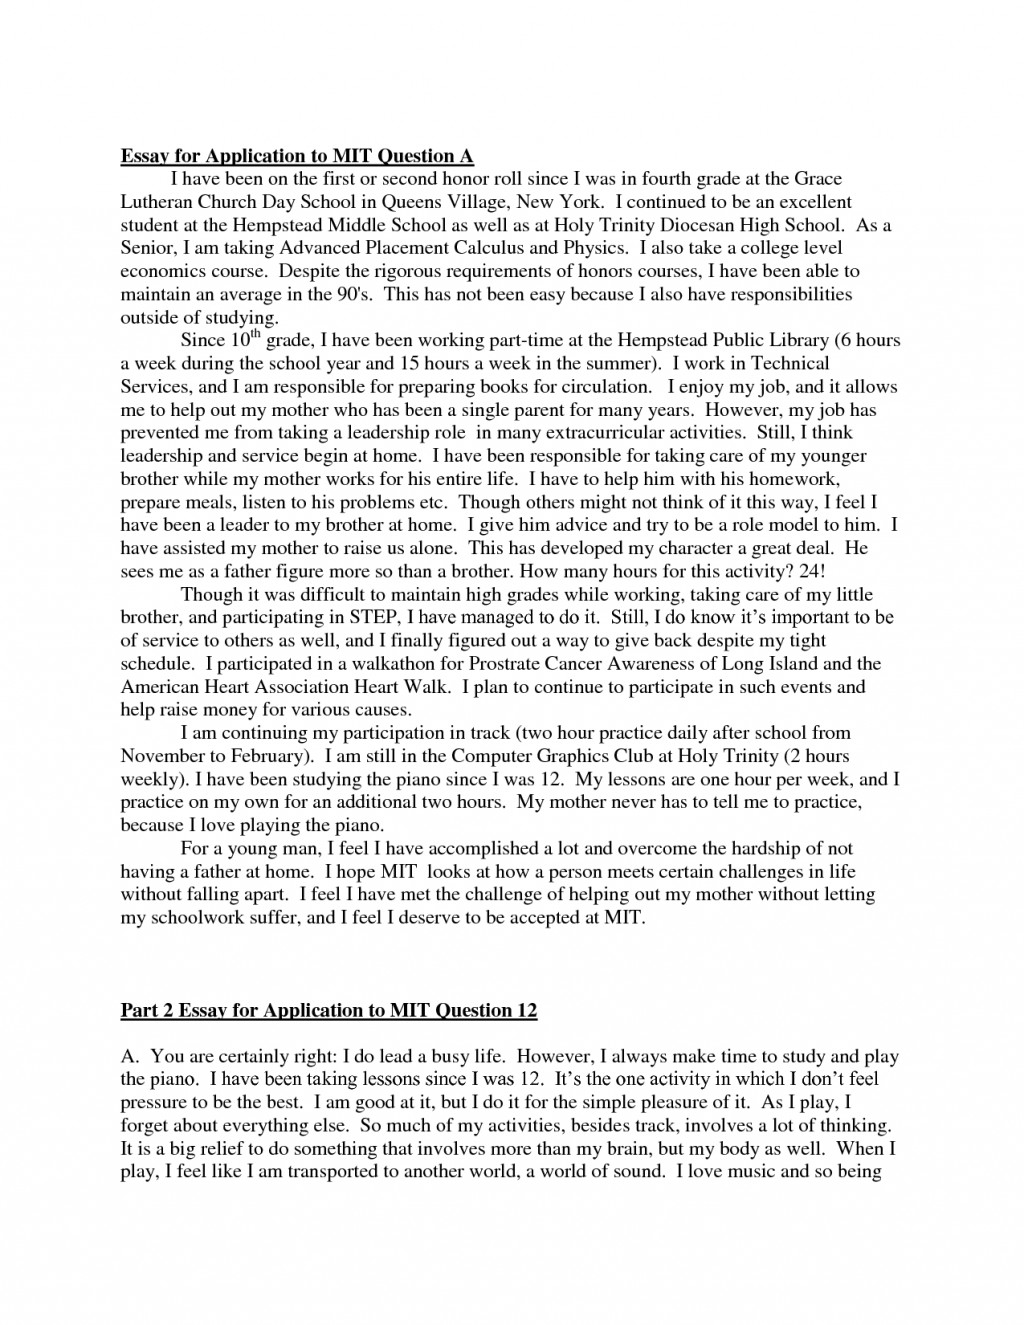 003 Essay Example Mhmfsn8u3k Sample College Surprising Application Essays That Worked For Ivy League Pdf 1 Large